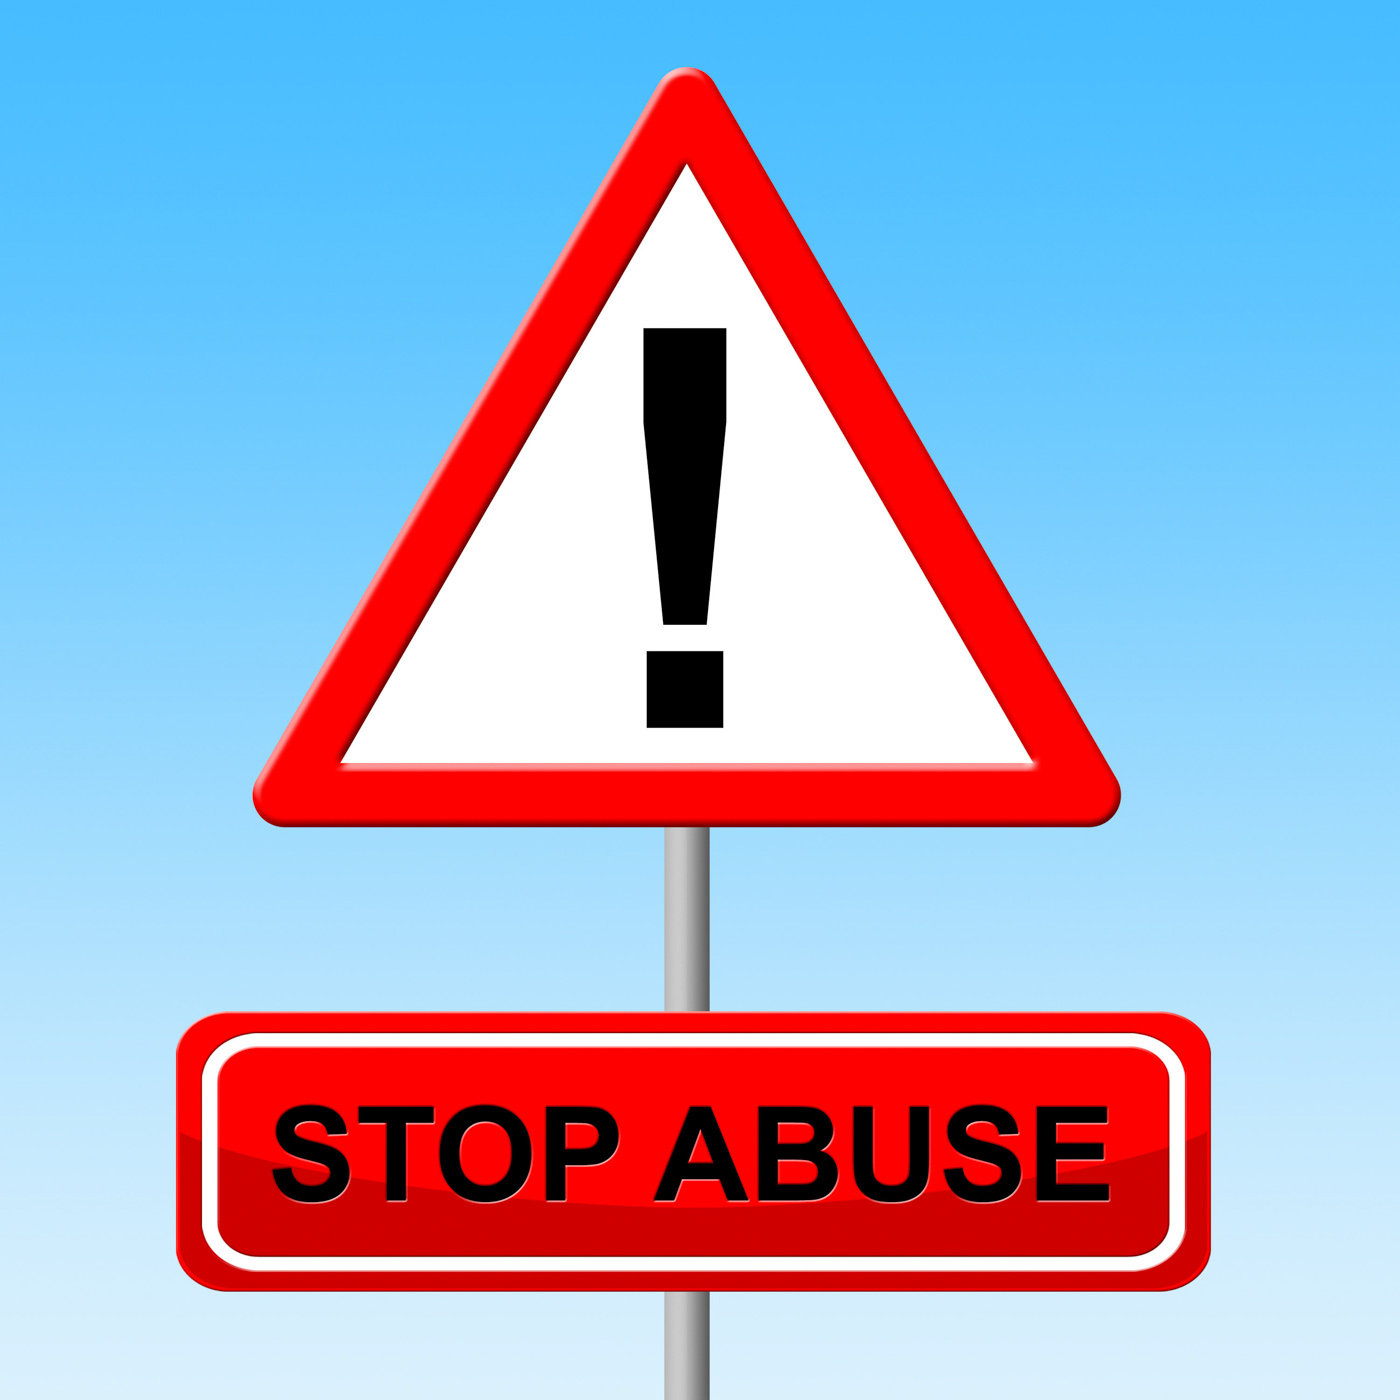 Stop abuse indicates warning sign and danger photo